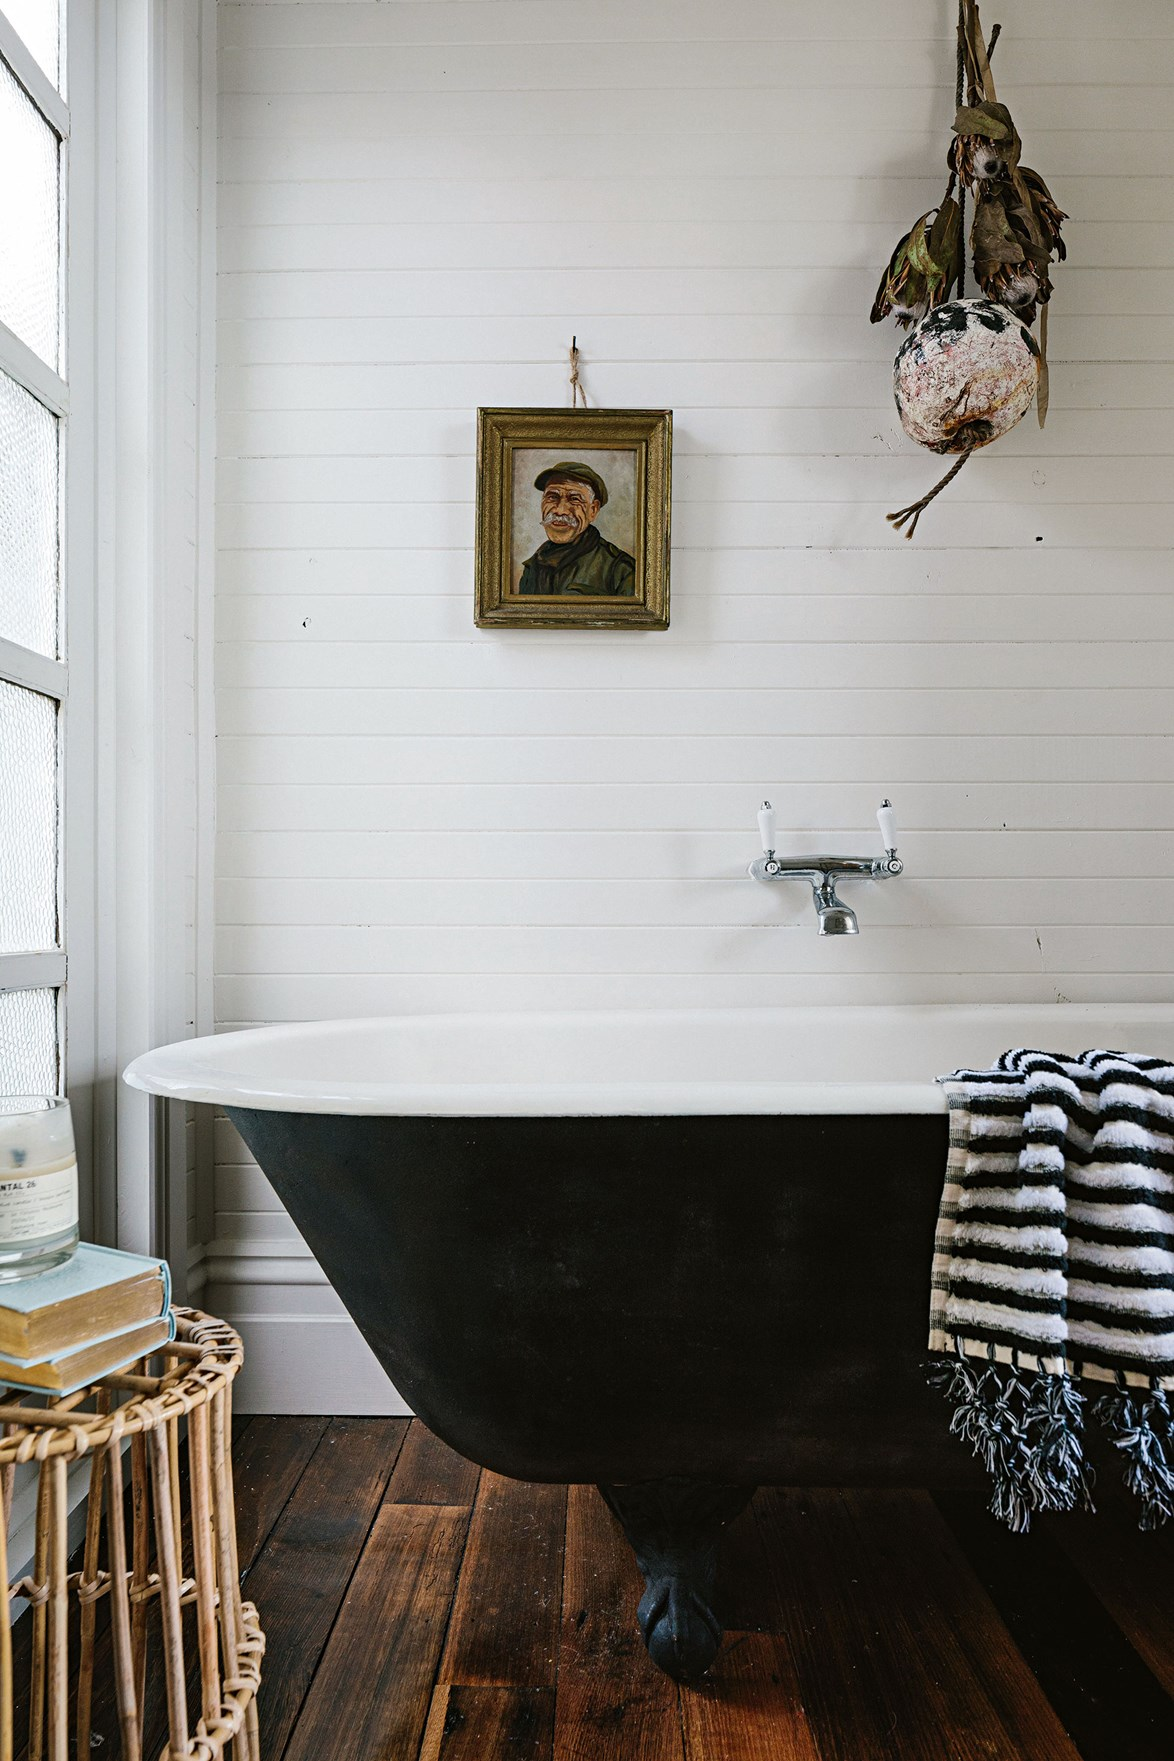 "**CREATE A COSY BATHROOM**<p> <p>Captain's Rest, [Tasmania's cosiest Airbnb](https://www.homestolove.com.au/tasmania-airbnb-captains-rest-13981|target=""_blank""), was renovated over a period of six months and every room features the original timber panelling, including the bathroom! It may be strange to see something other than tiles in a bathroom, but as long as the timber has been sealed correctly, you're good to go (just avoid using it in the shower … as that could spell disaster). Some newer types of wall cladding, such as [Easycraft's wet area range](https://www.easycraft.com.au/product/category/wet-area/